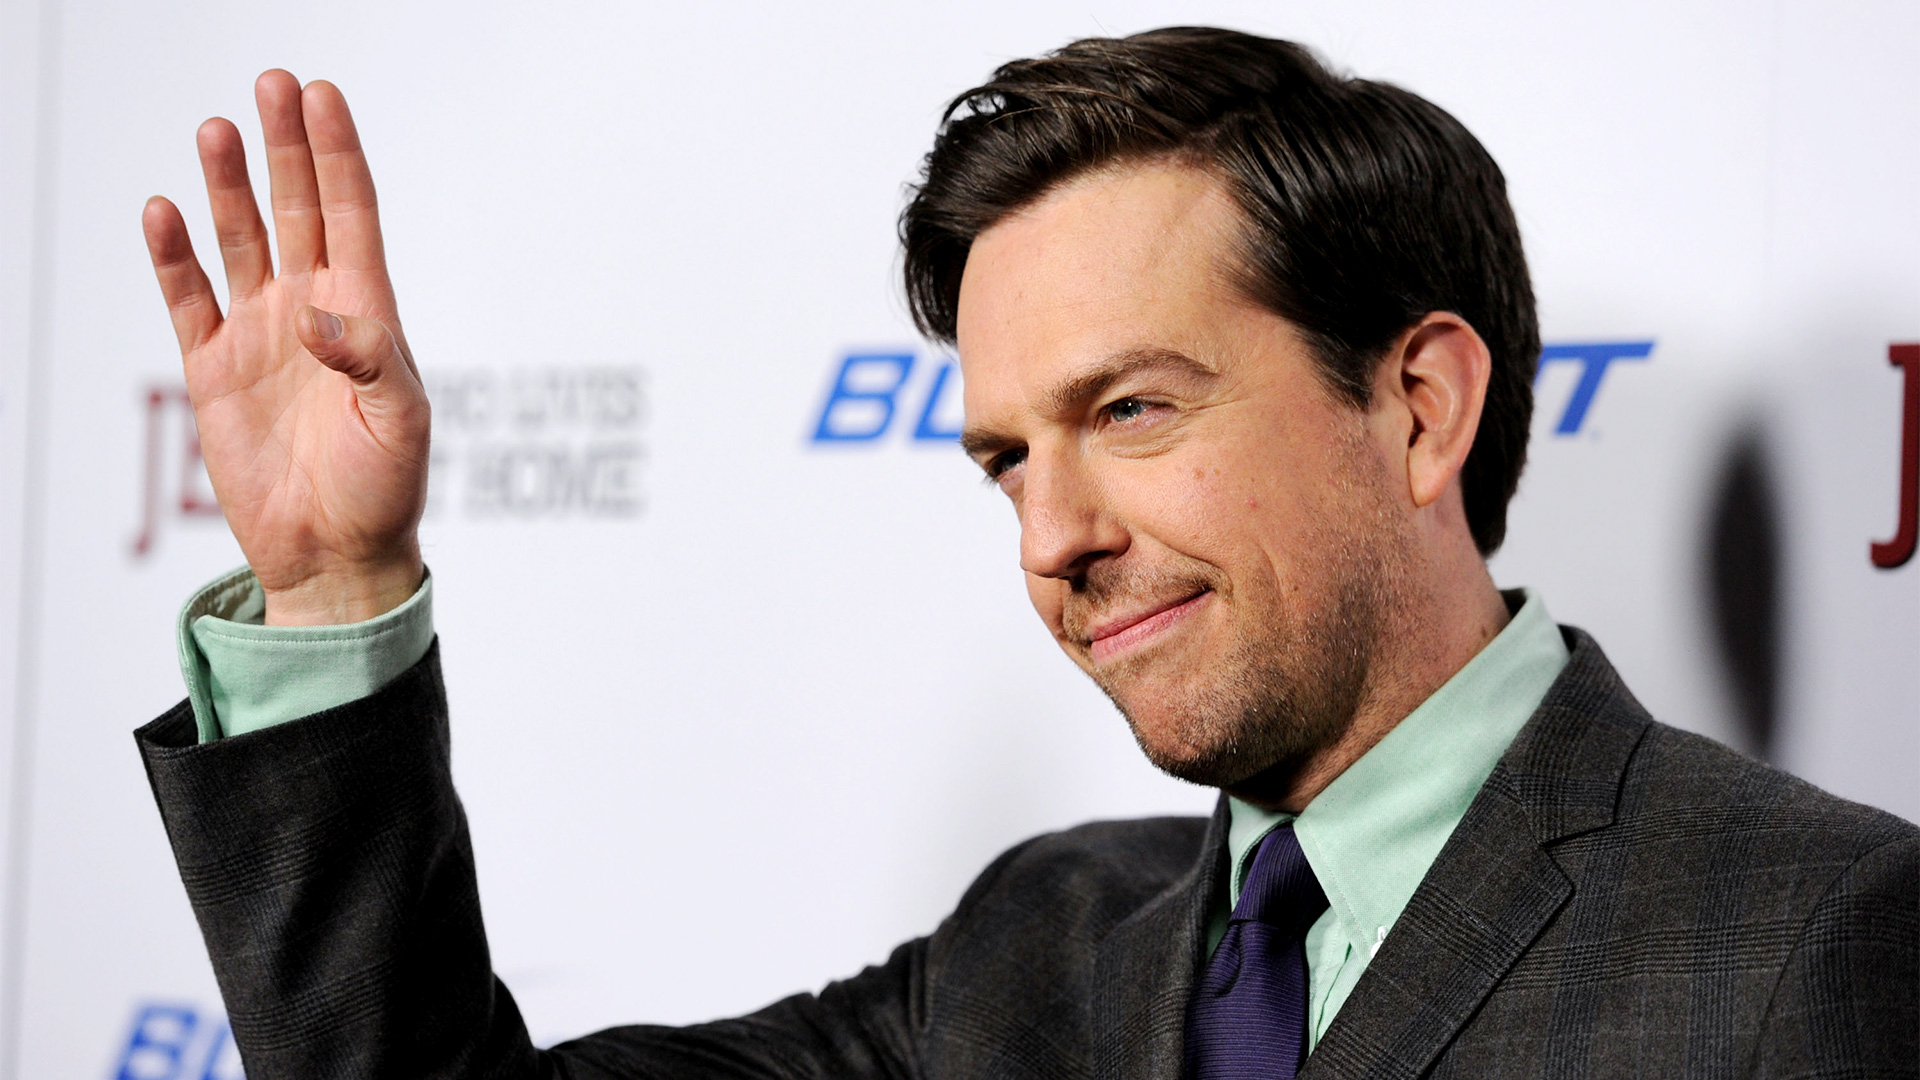 Ed Helms To Star In THE NAKED GUN Reboot - YouTube